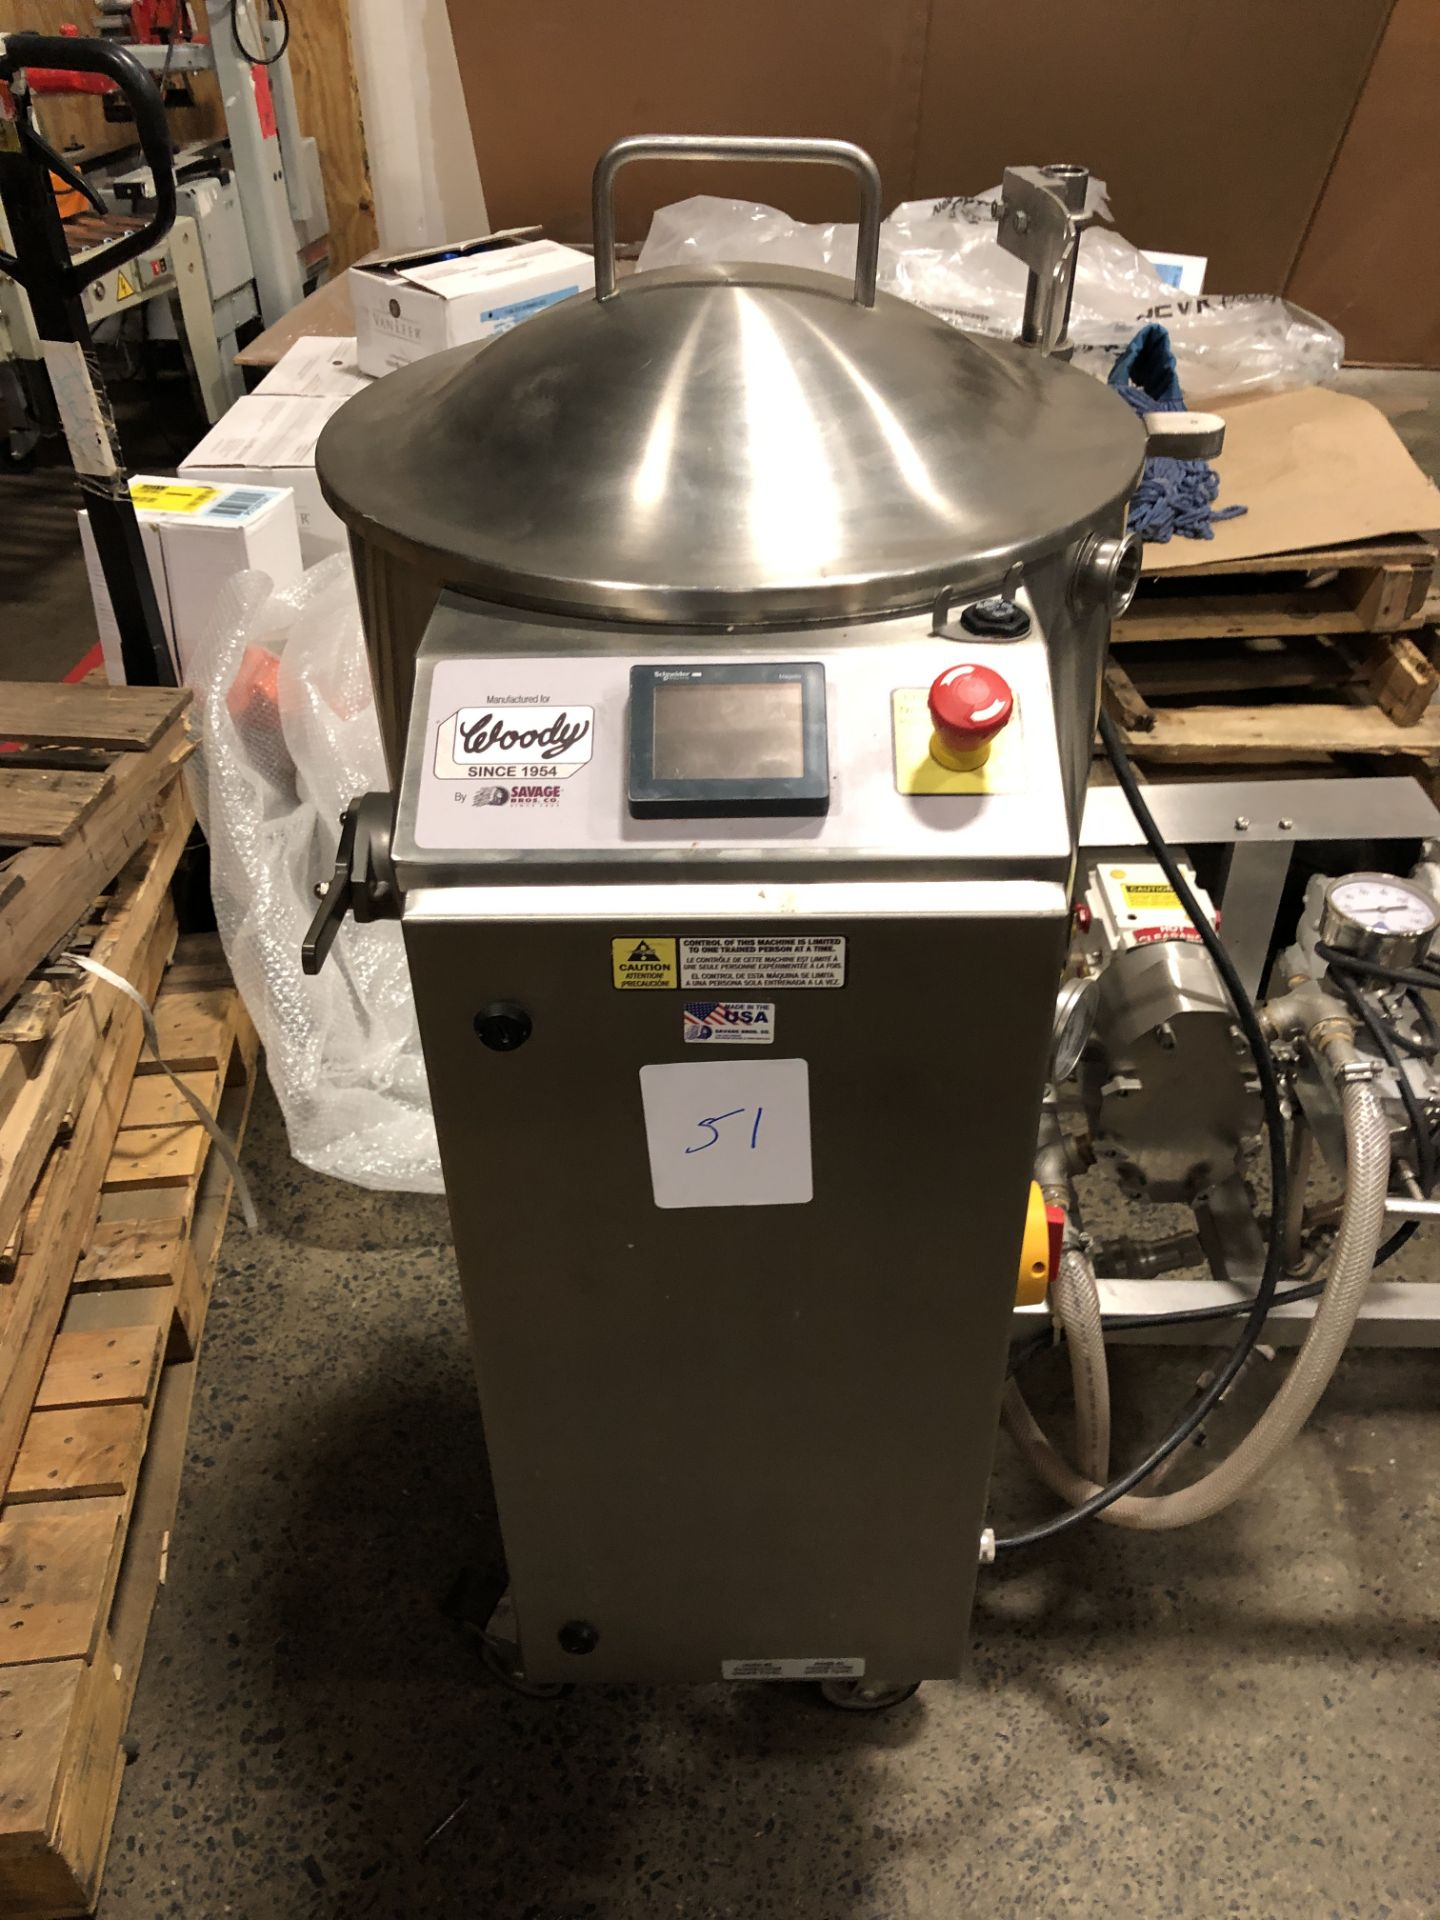 Lot 45 - Savage/Woody 125 lb Stainless Steel Chocolate Melter with Touchscreen controls, jacketed and